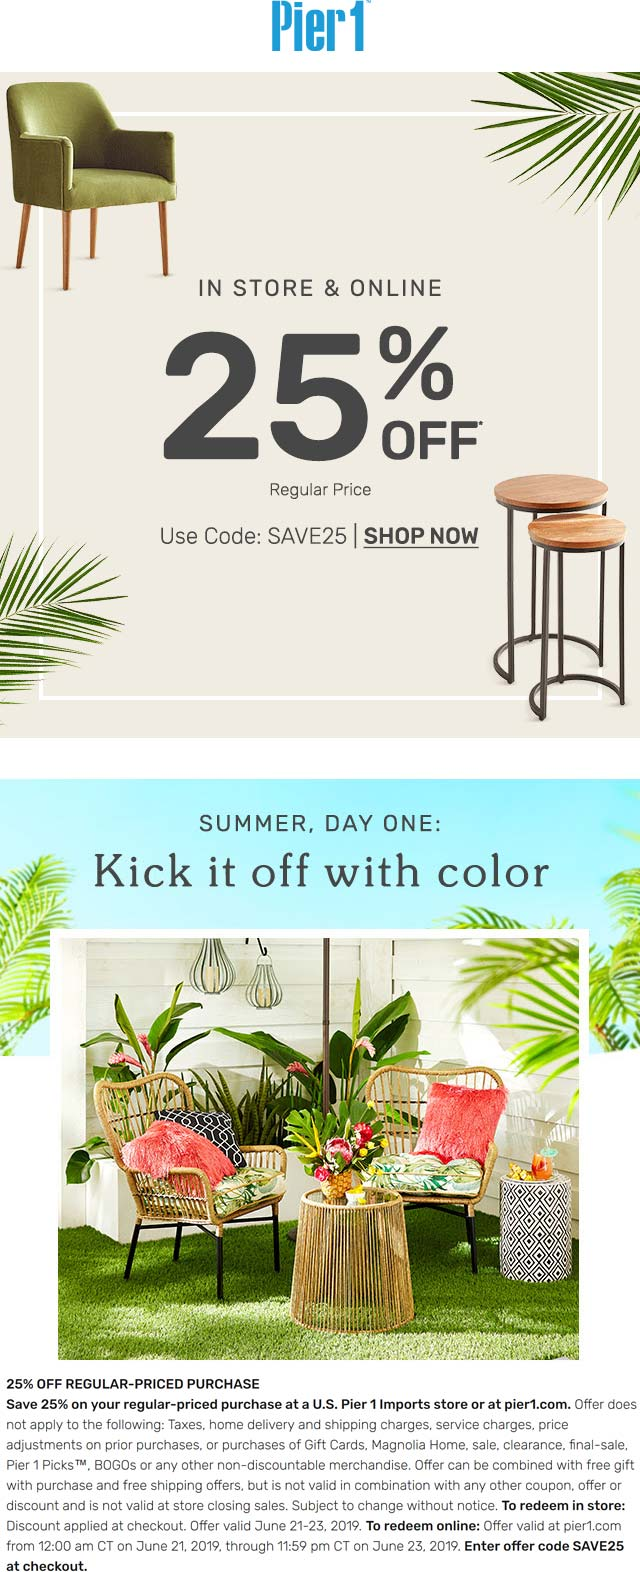 Pier 1 coupons & promo code for [October 2020]